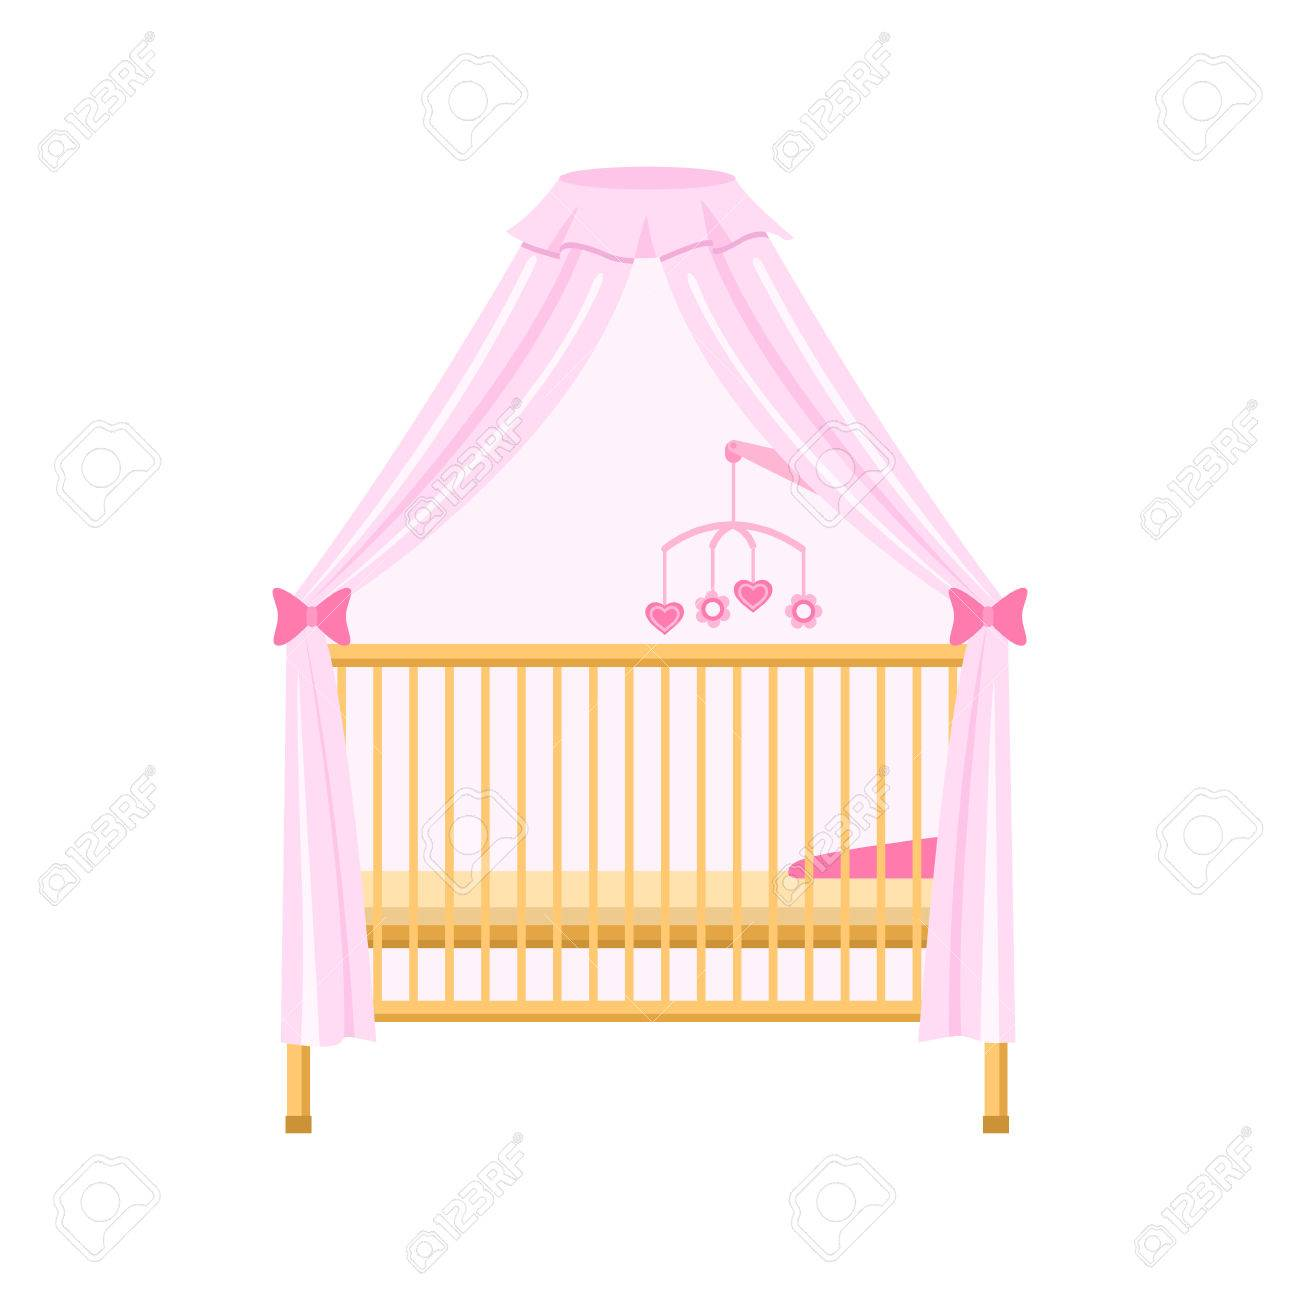 Wooden Baby Mobile Wooden Baby Cot Isolated On A White Background Vector Illustration